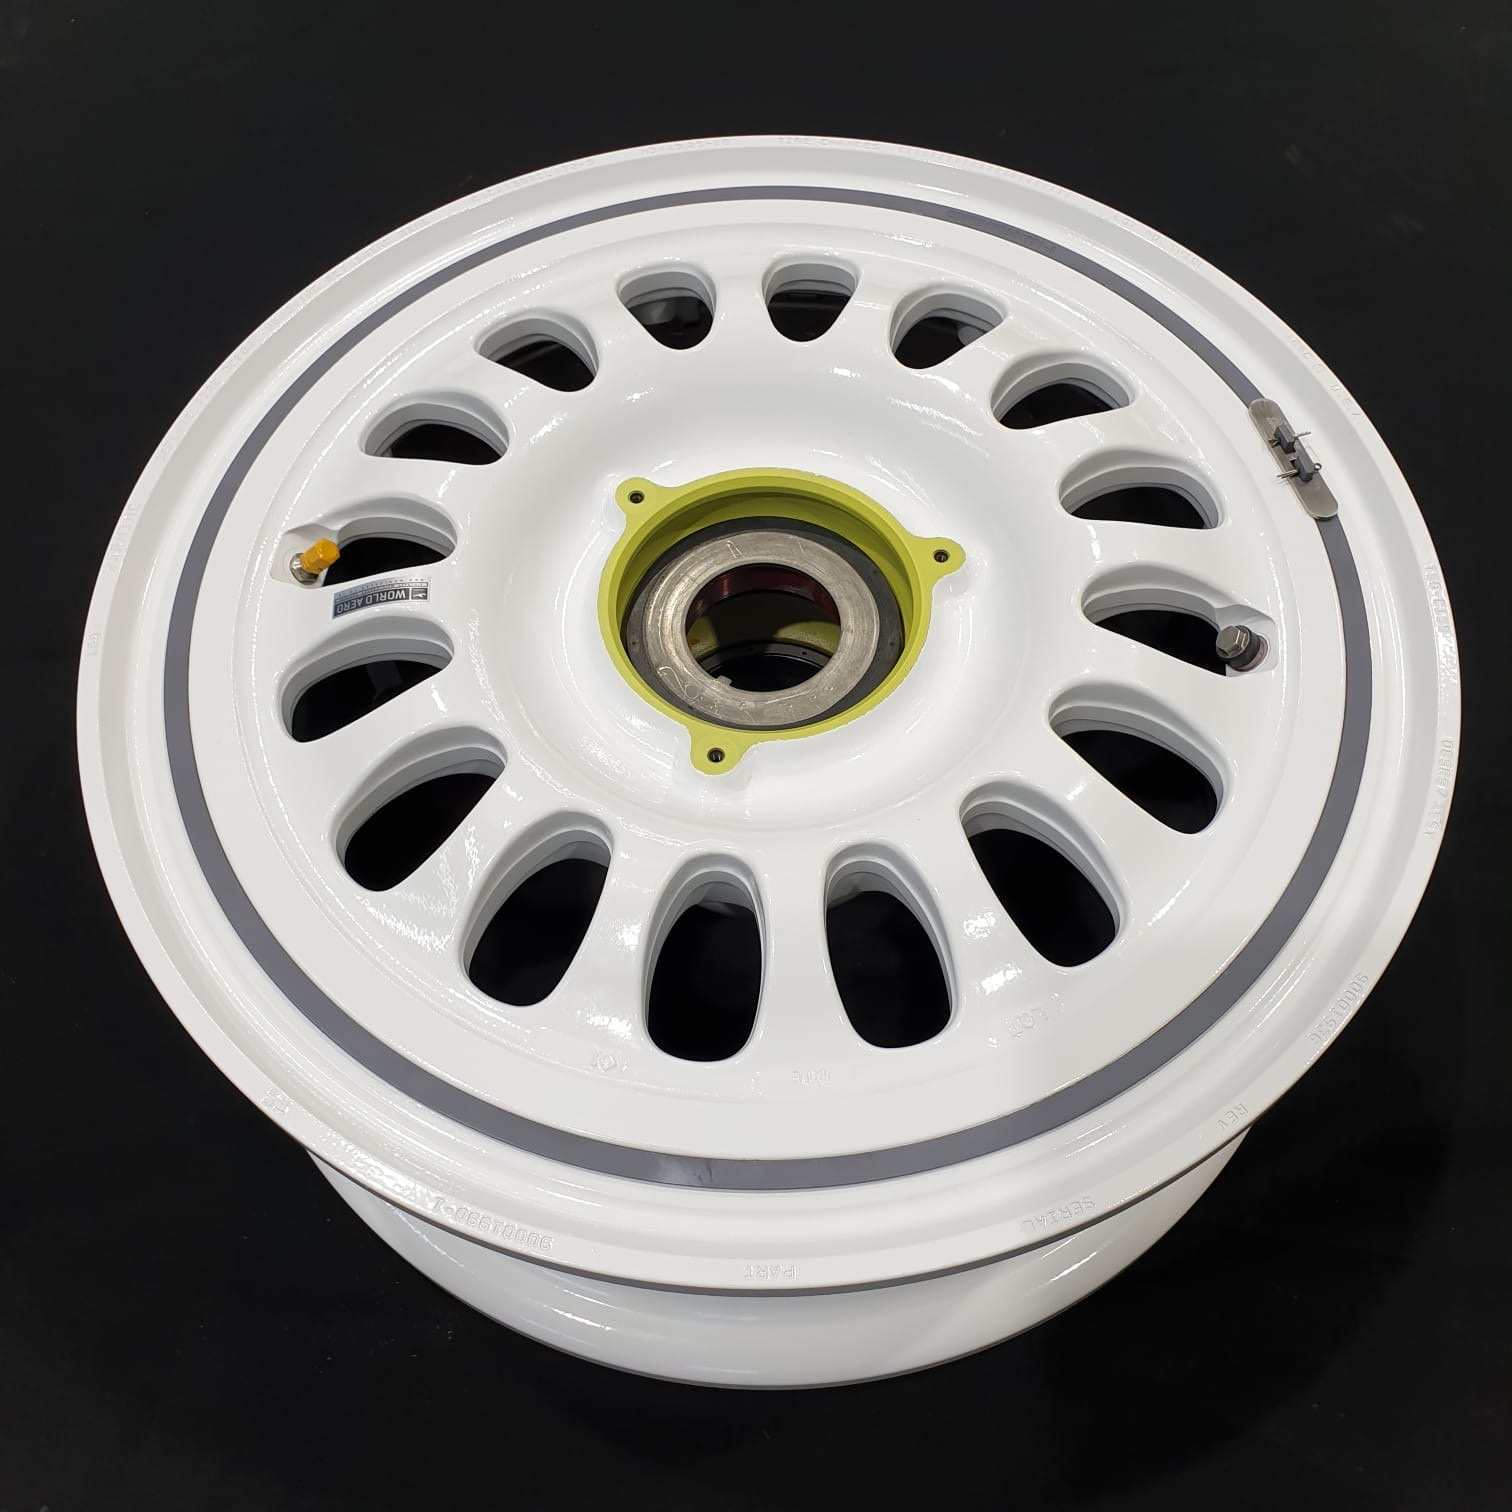 1159SCL472-5 Gulfstream G450 Meggitt main wheel